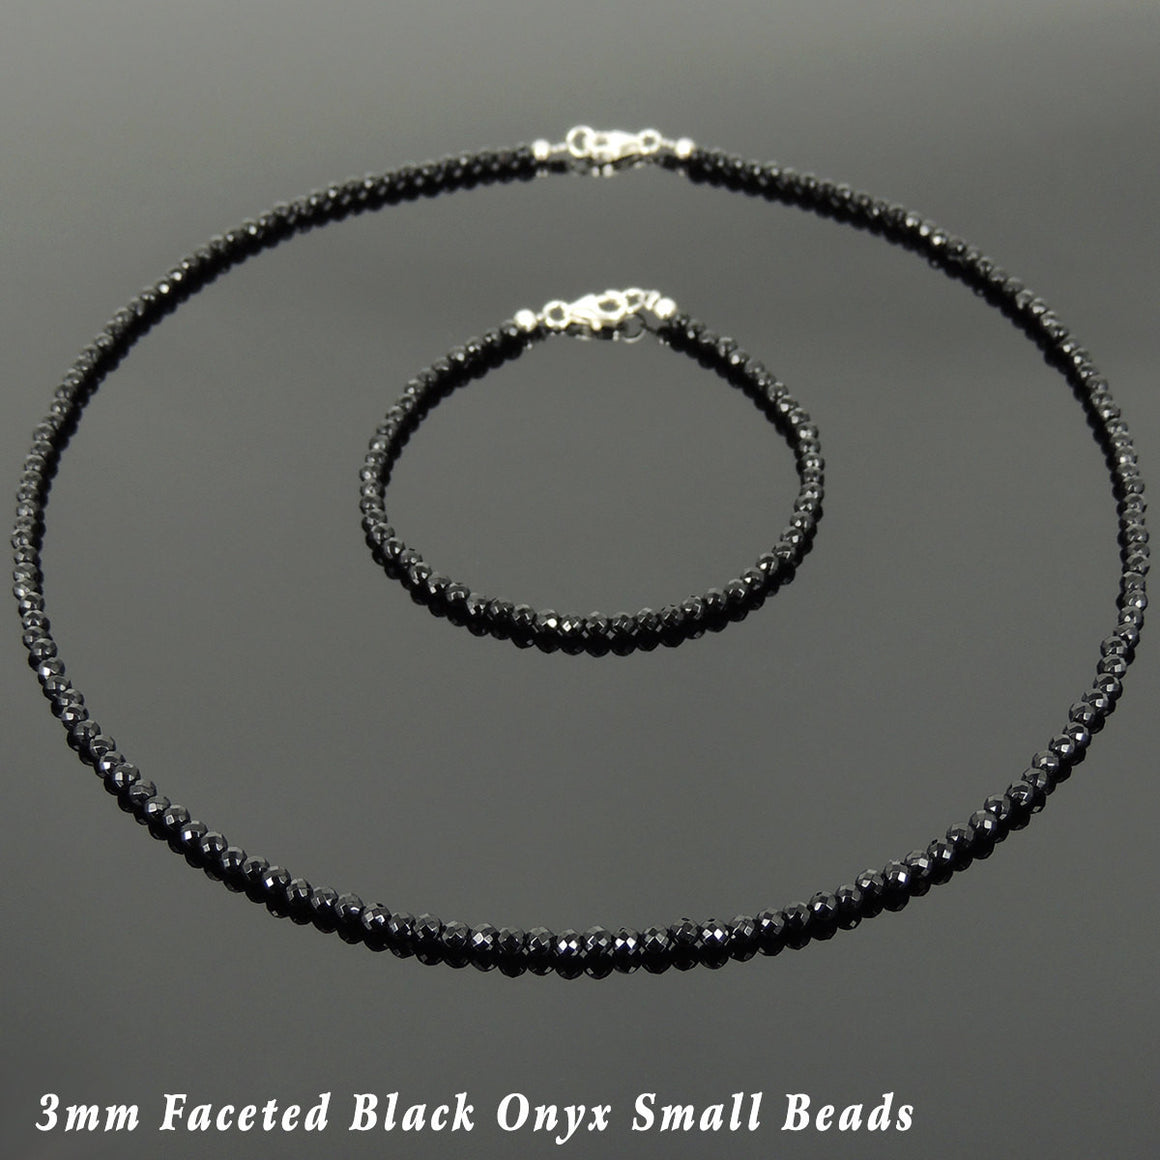 3mm Faceted Black Onyx Healing Gemstone Bracelet & Necklace Set with S925 Sterling Silver Spacer Beads & Clasp - Handmade by Gem & Silver NK136_BR871